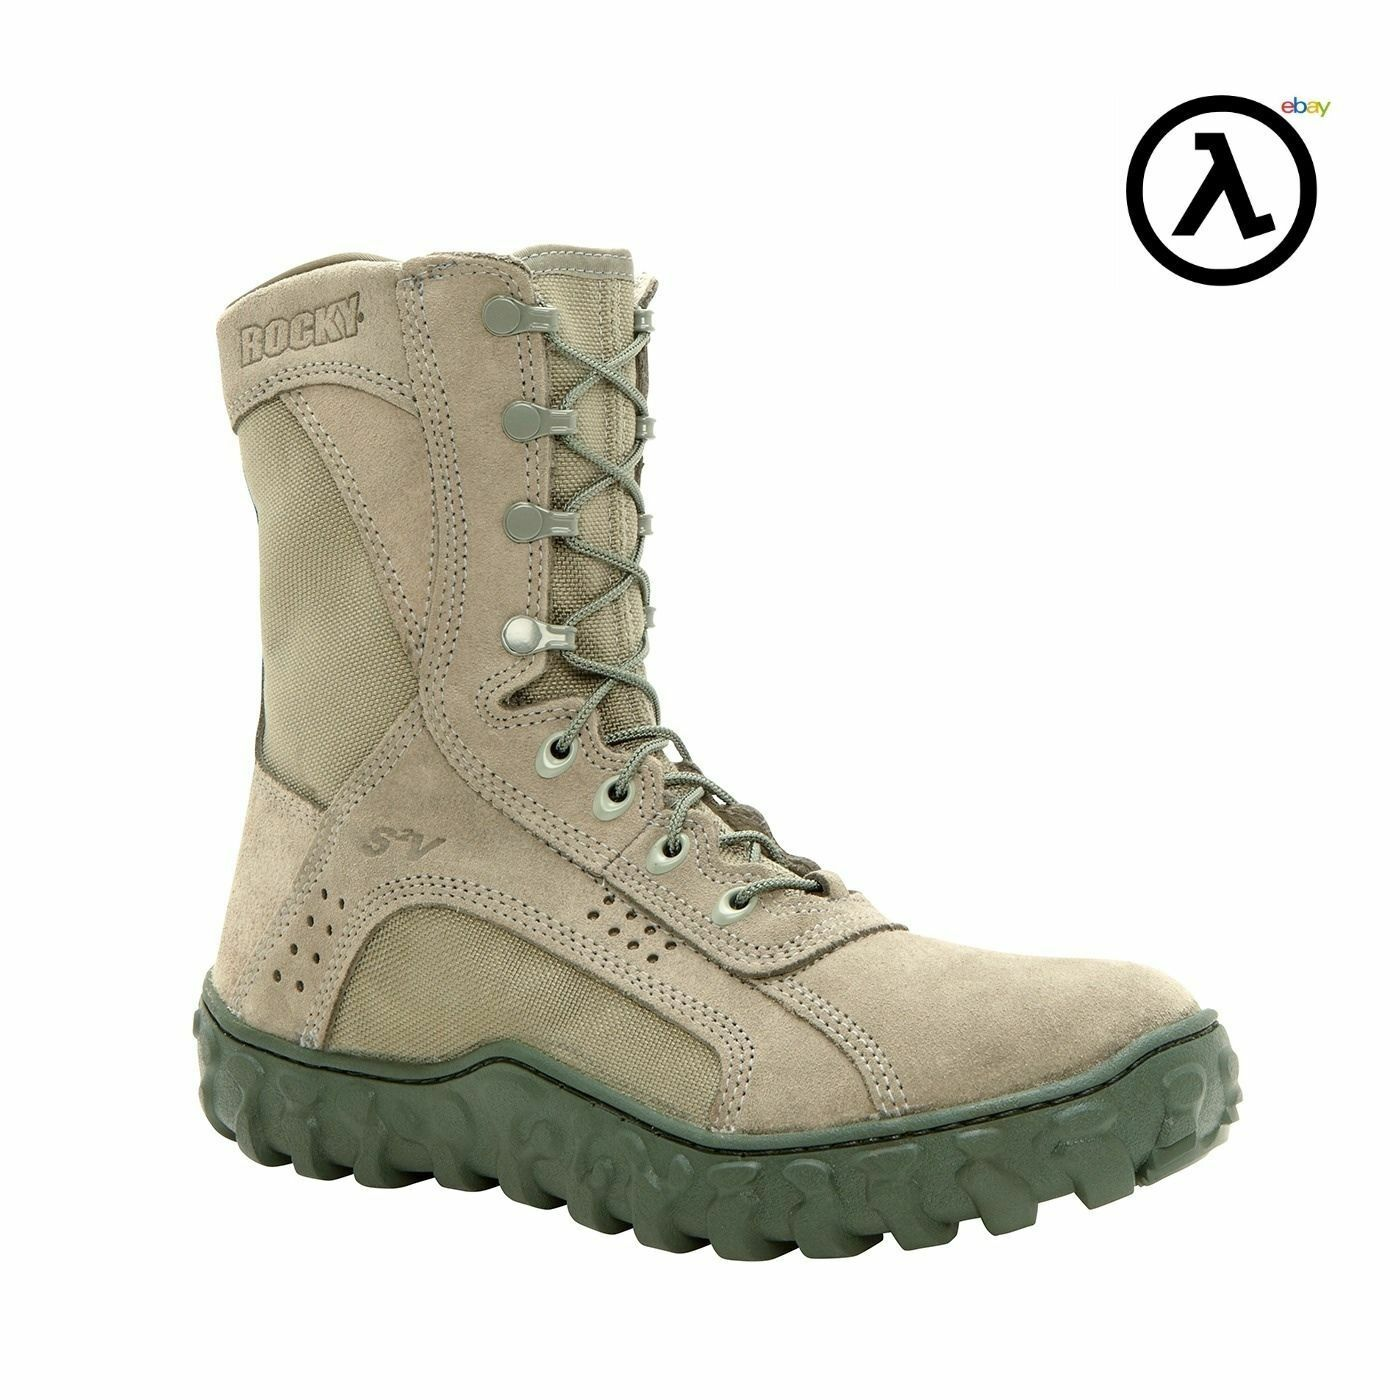 ROCKY S2V MILITARY DUTY DUTY DUTY BOOT FQ0000103   SAGE GREEN  ALL SIZES - SALE fc87a5